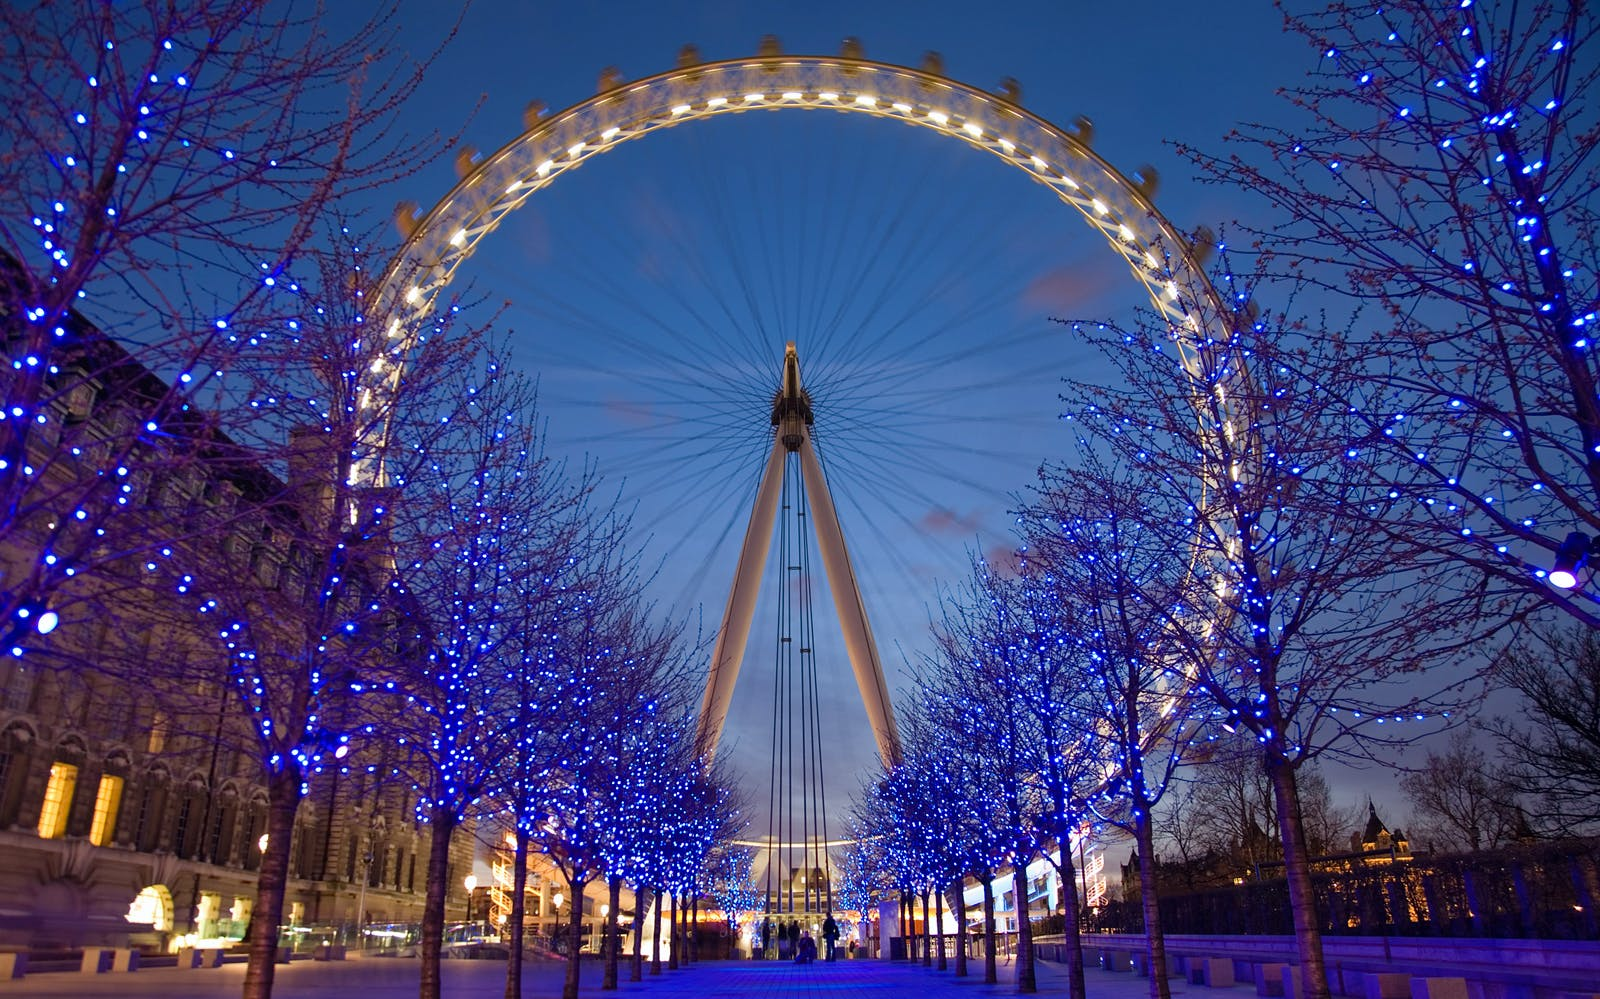 coca cola london eye standard experience tickets-2